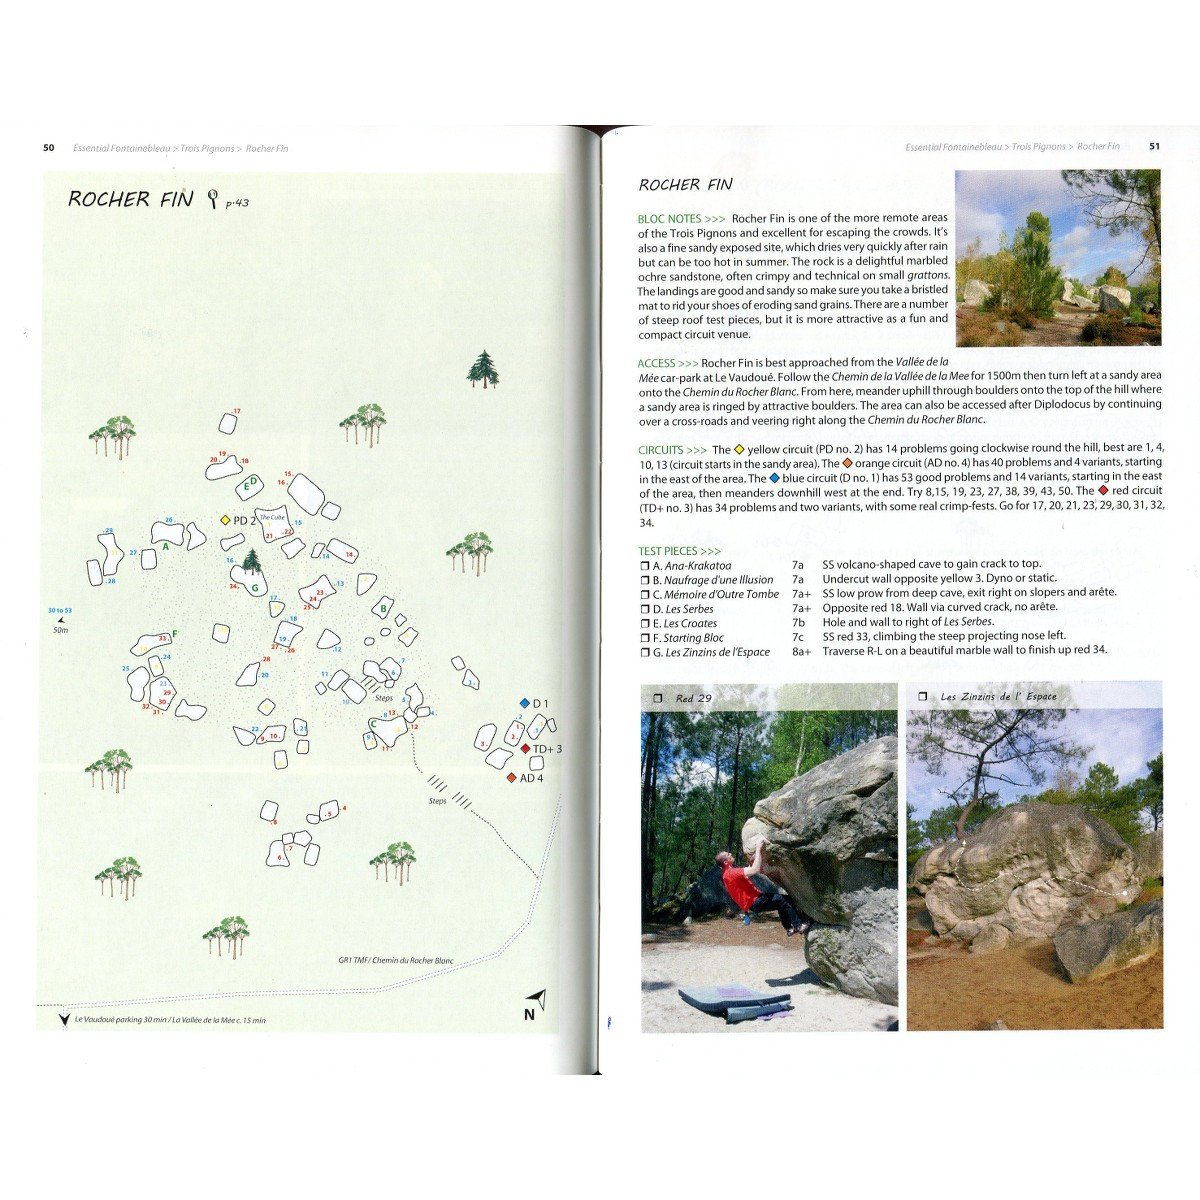 Essential Fontainebleau, example pages showing maps and photos